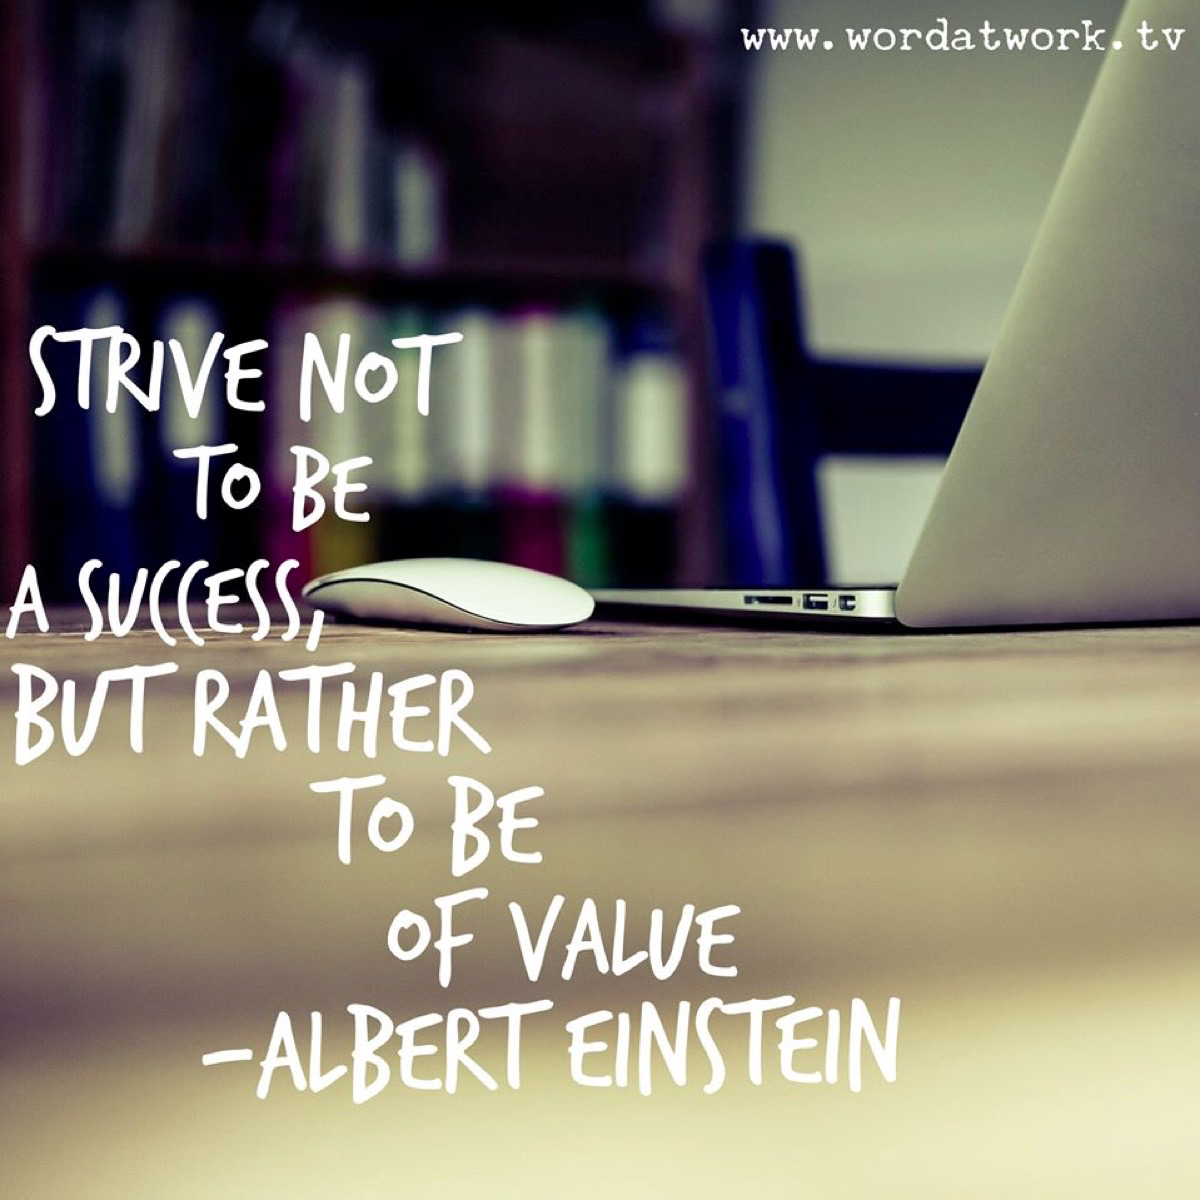 Strive For Value Success Will Follow Word At Work